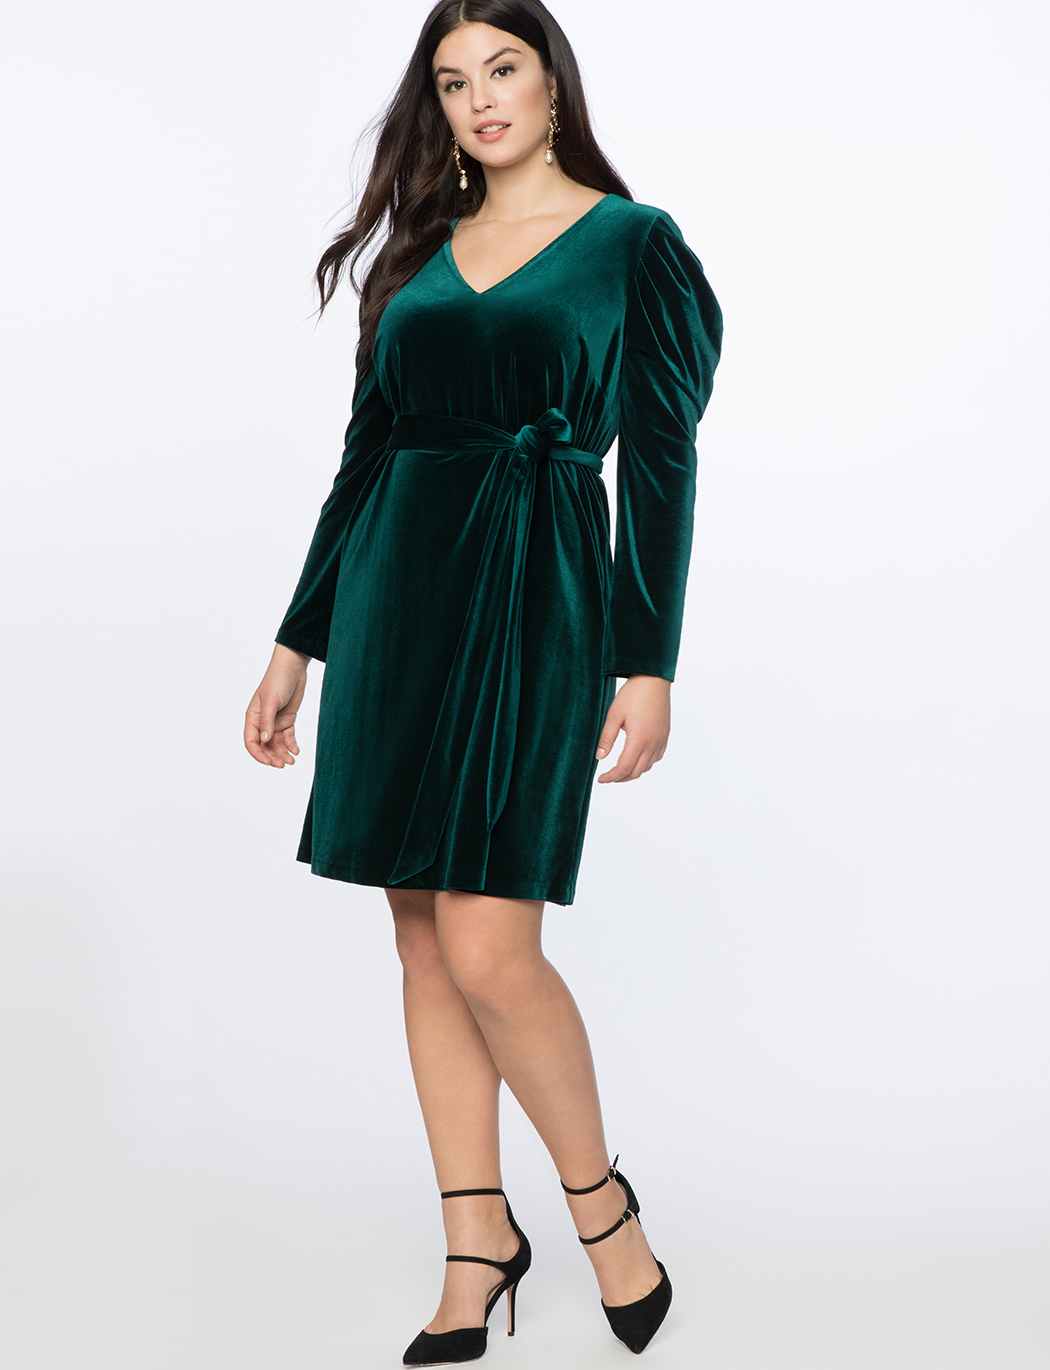 36fe66cbb4102 Draped Puff Sleeve Velvet Dress | Women's Plus Size Dresses ...